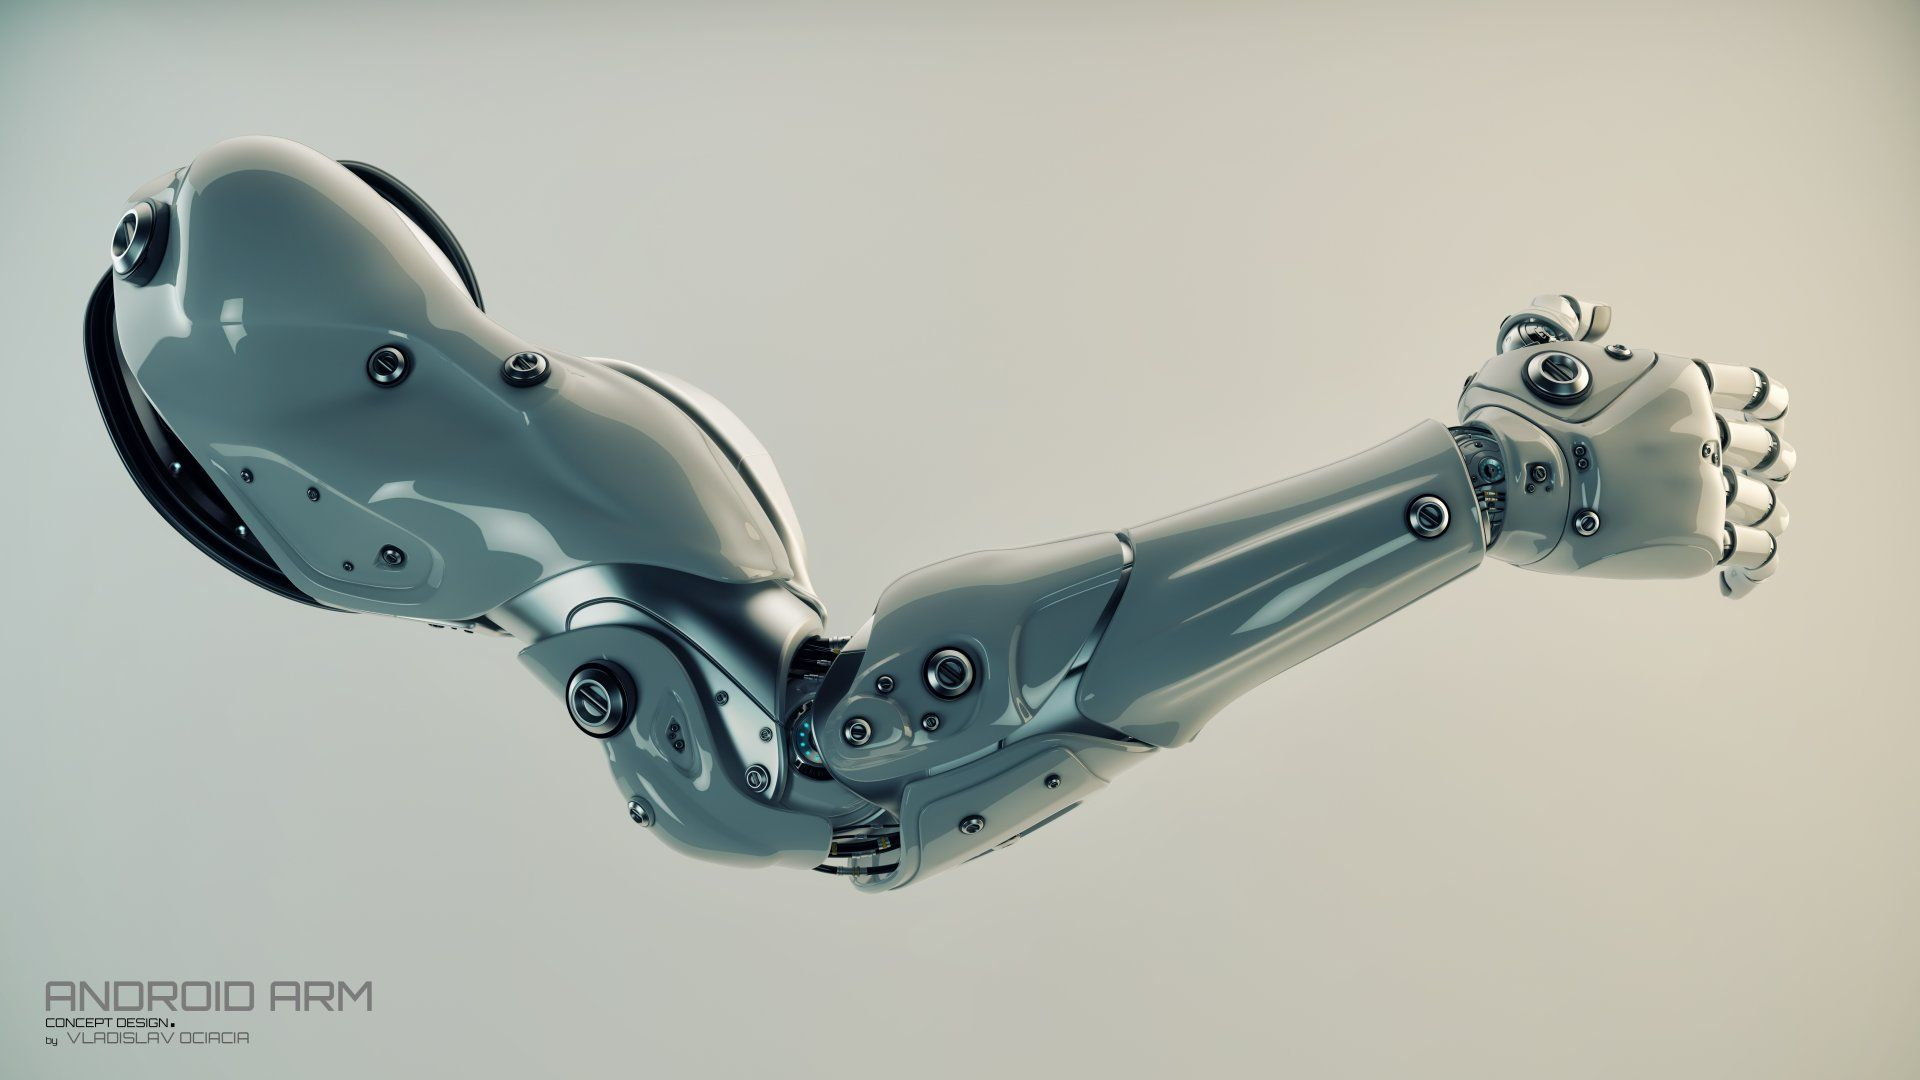 Image result for robotic arms for humans